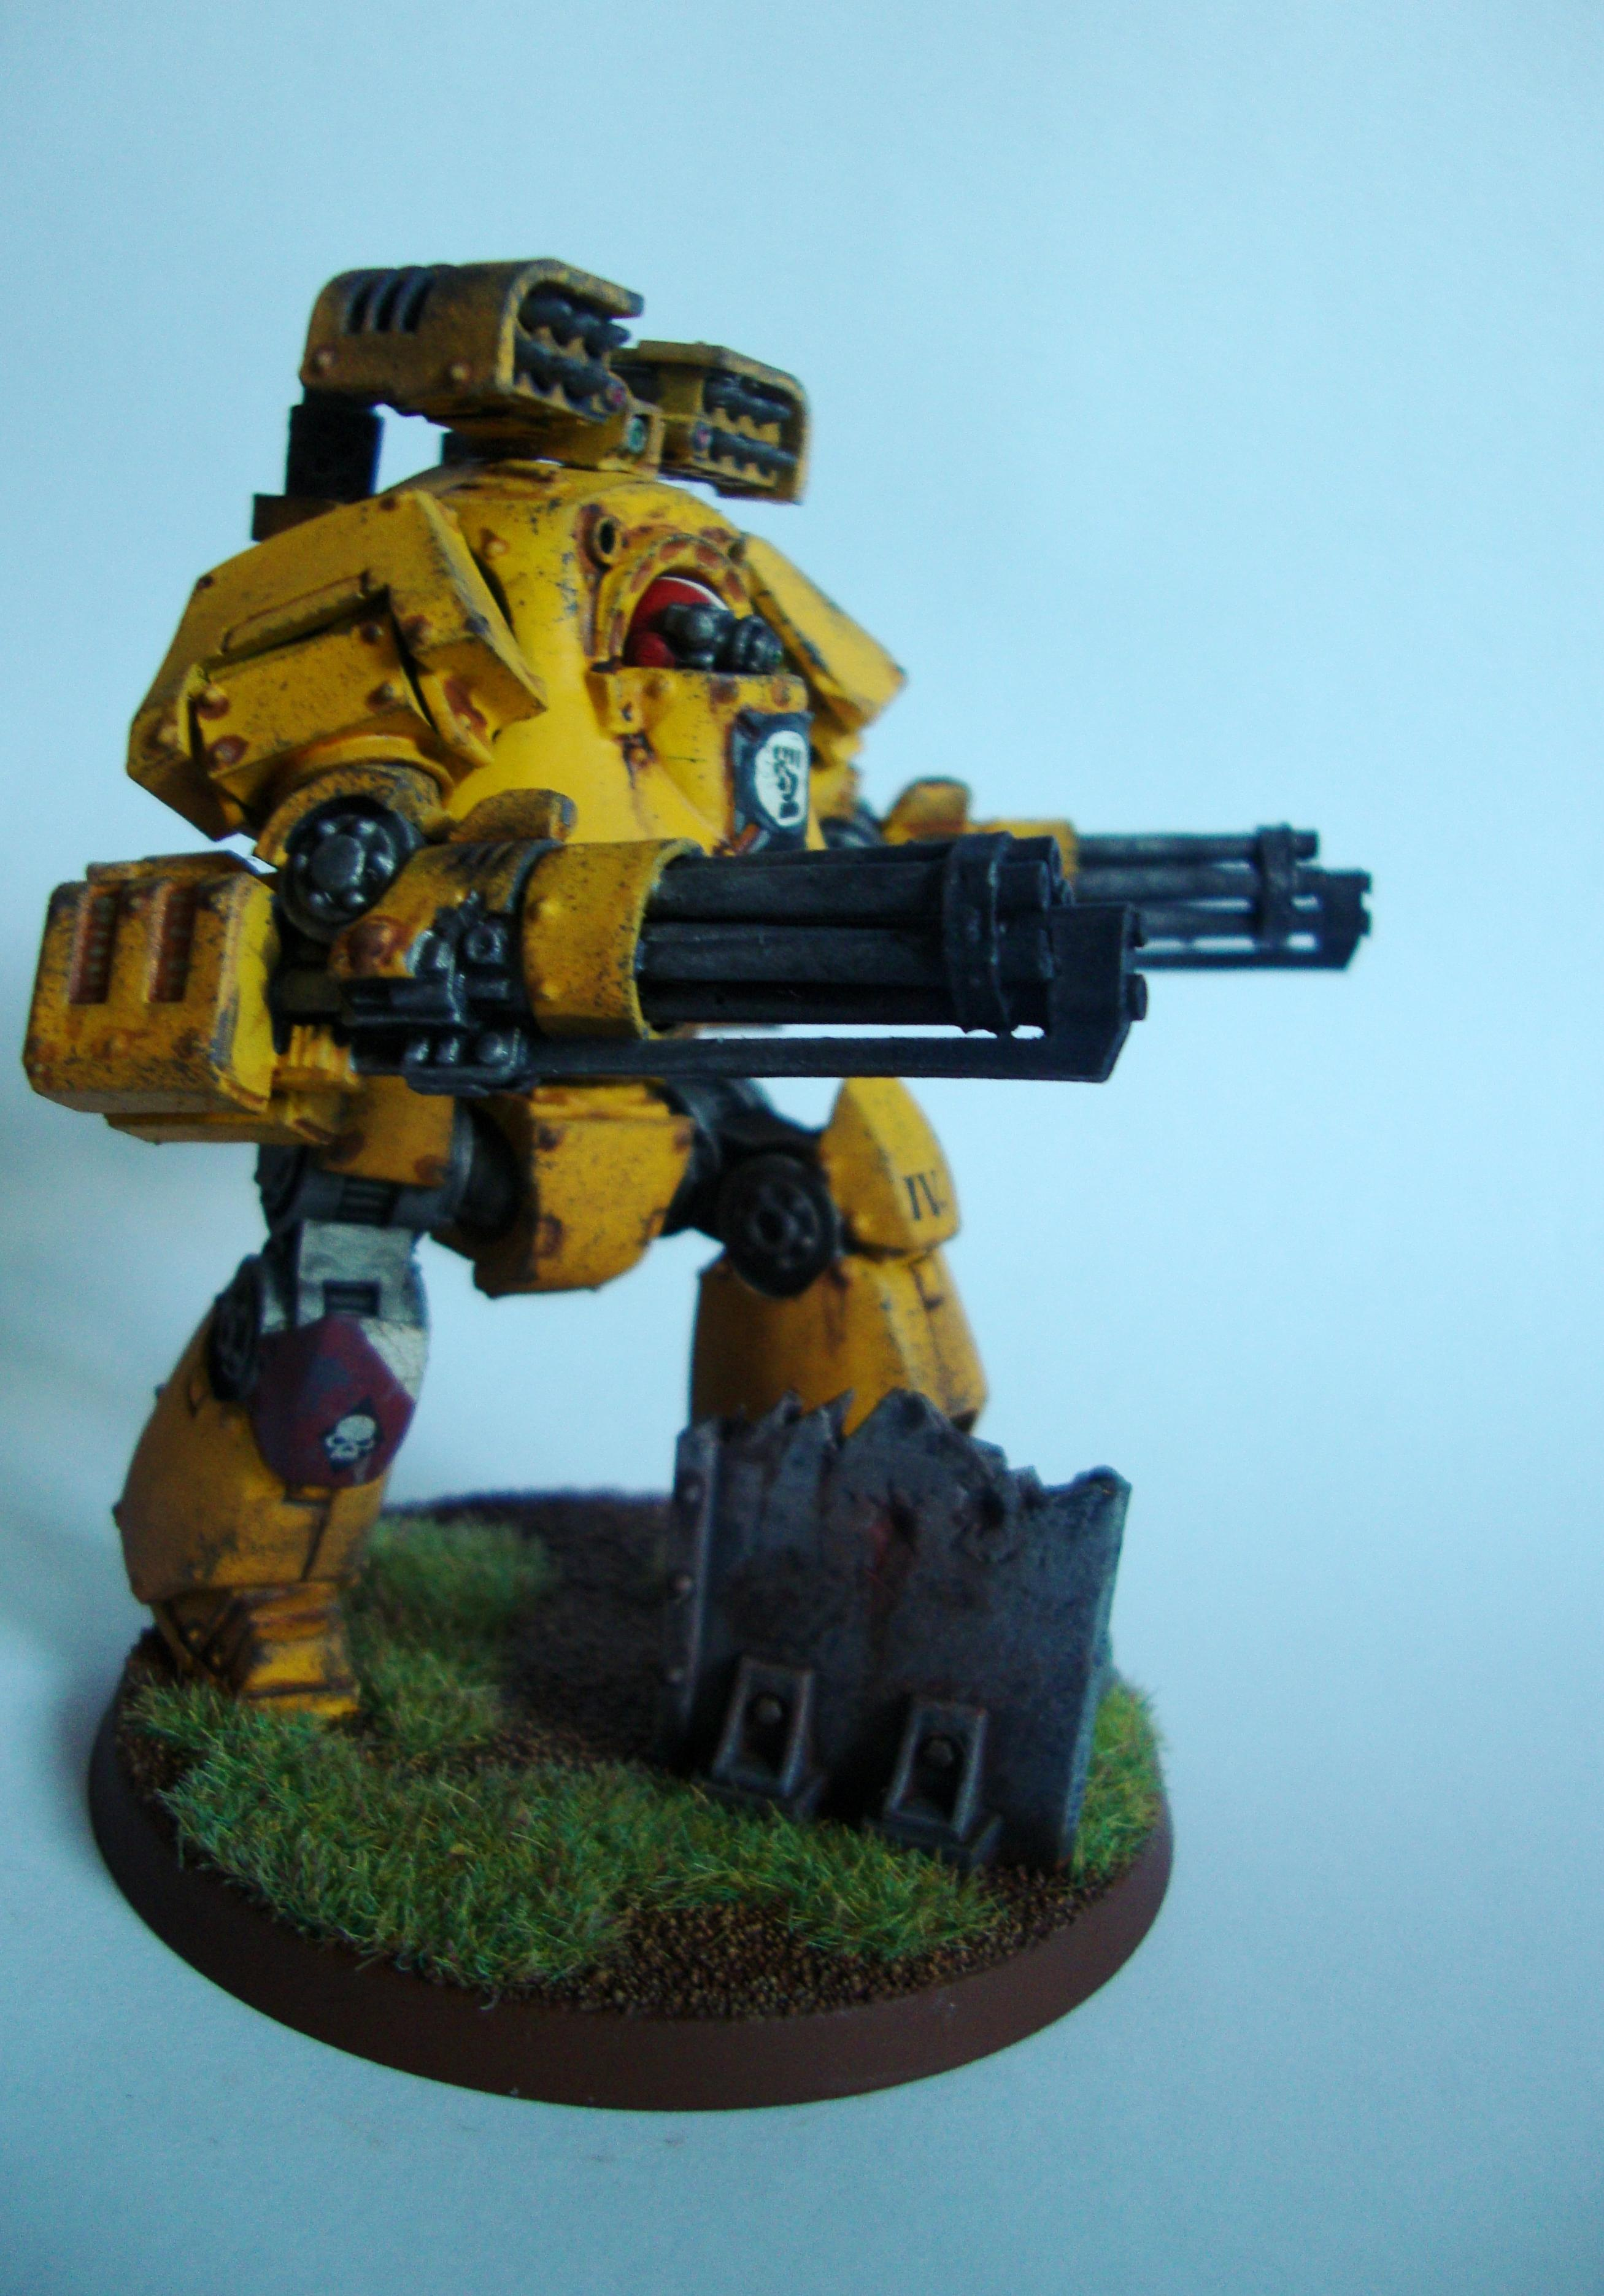 Airbrush, Contemptor, Dreadnought, Heresy, Imperial Fists, Mortis, Space Marines